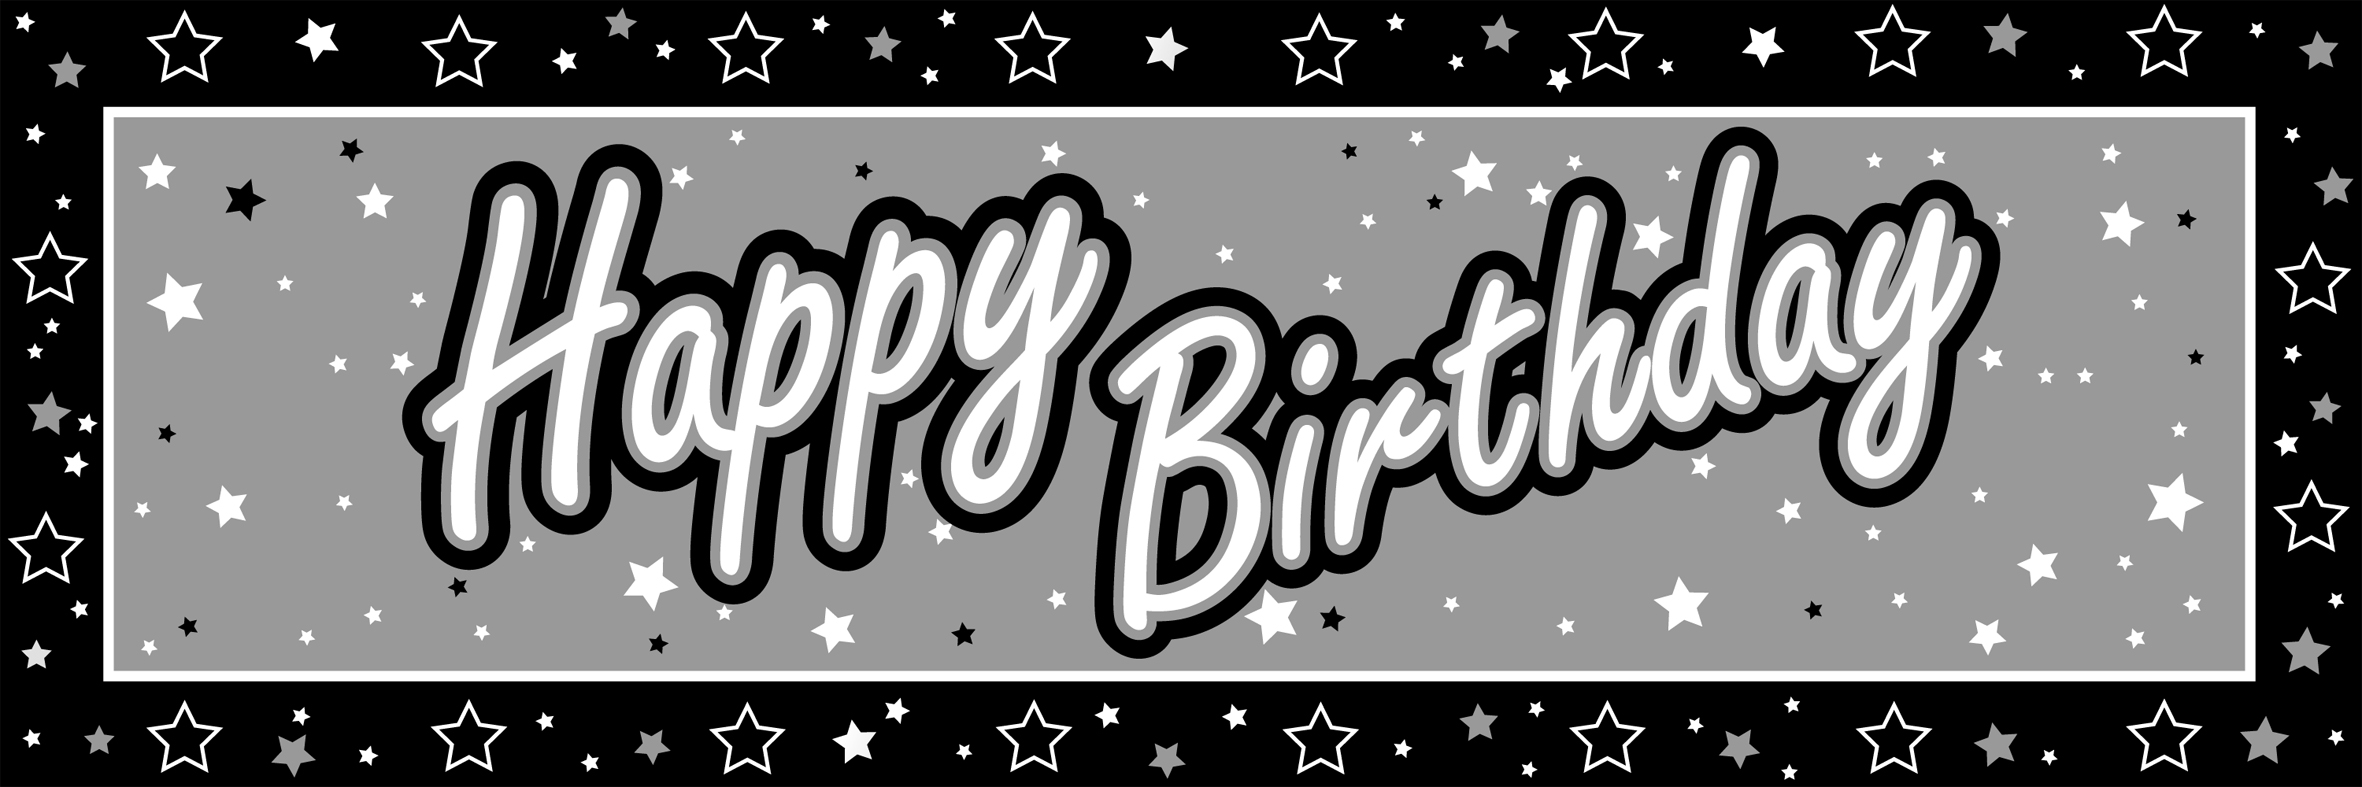 Similiar Black And White Birthday Banner Keywords.